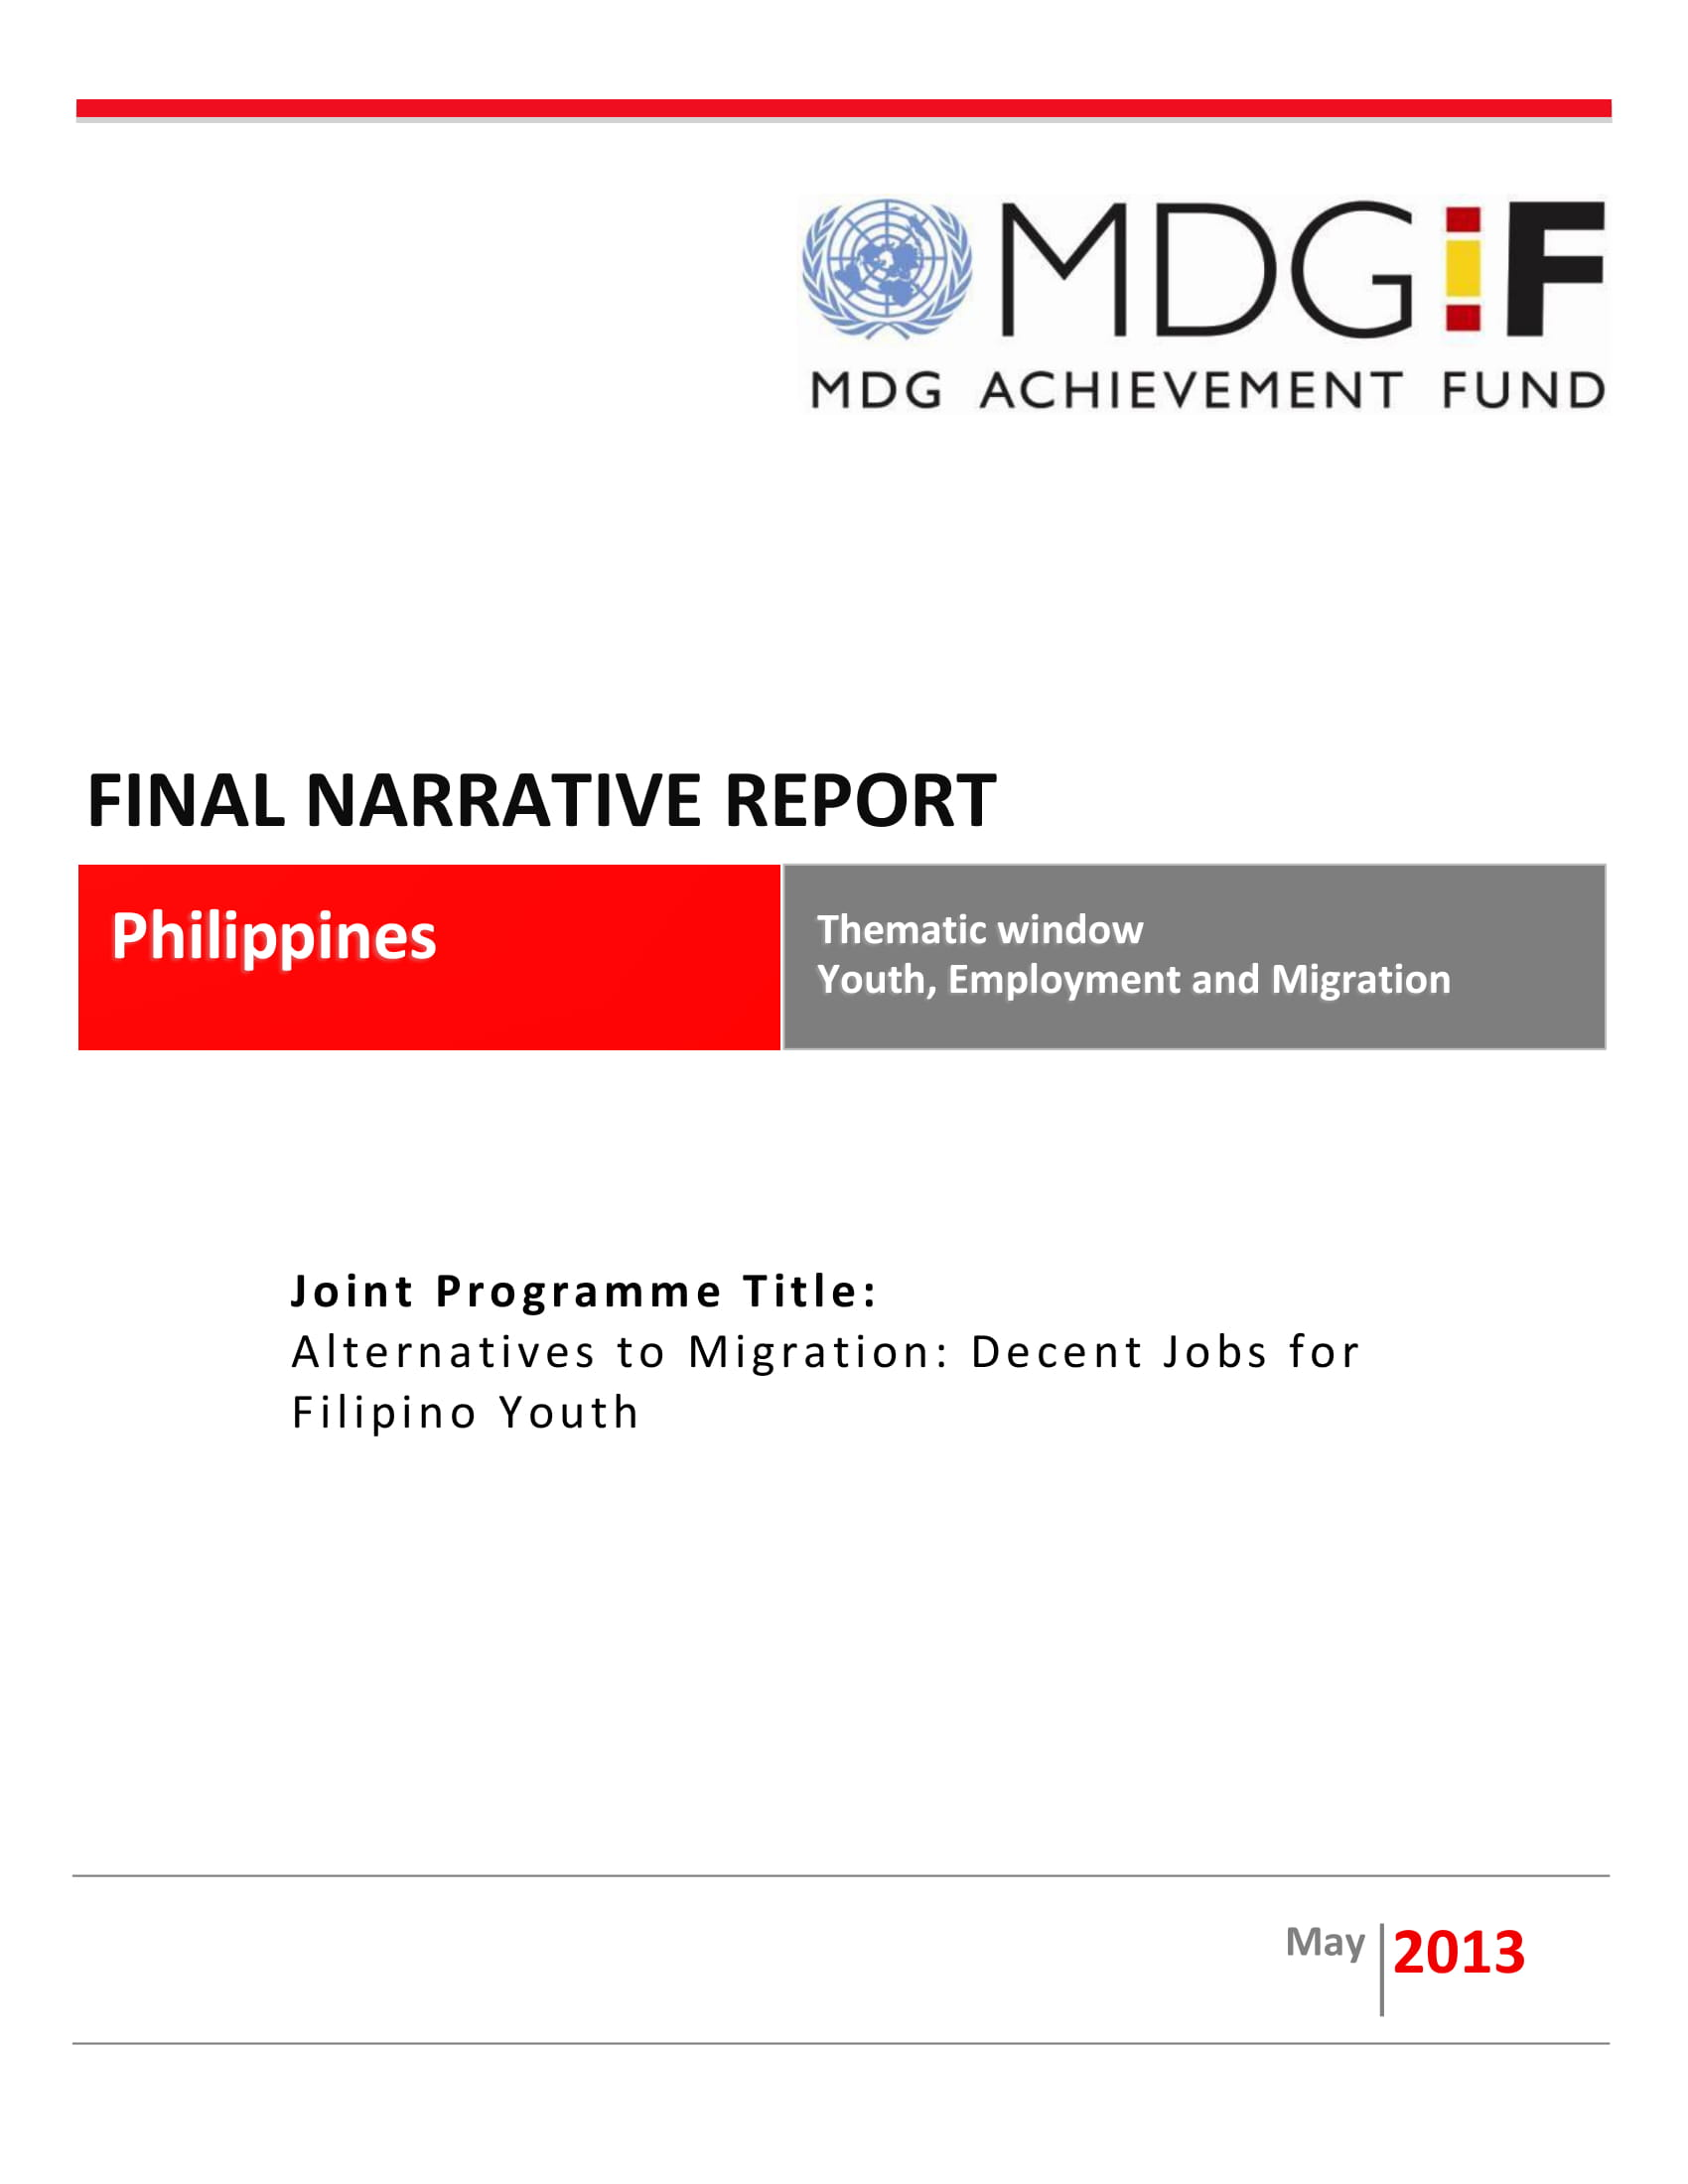 joint programme final narrative report example